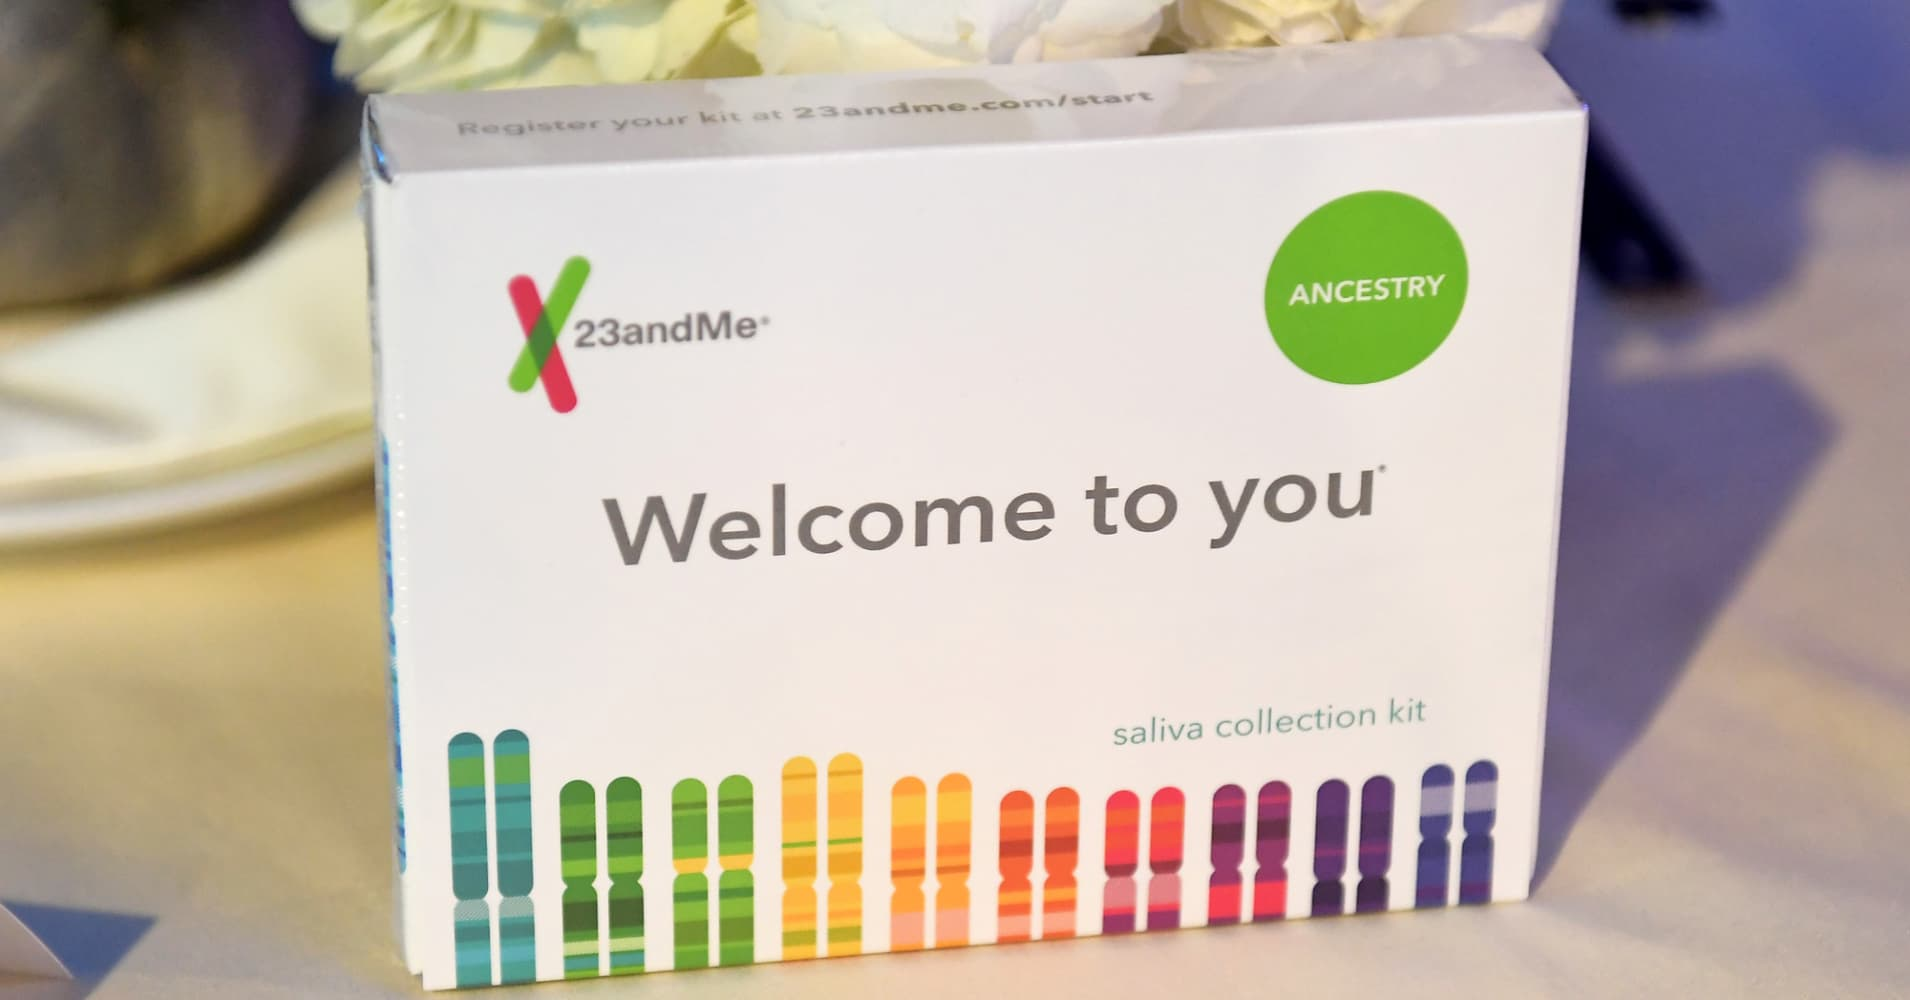 Privacy concerns rise as 26 million share DNA with ancestry firms